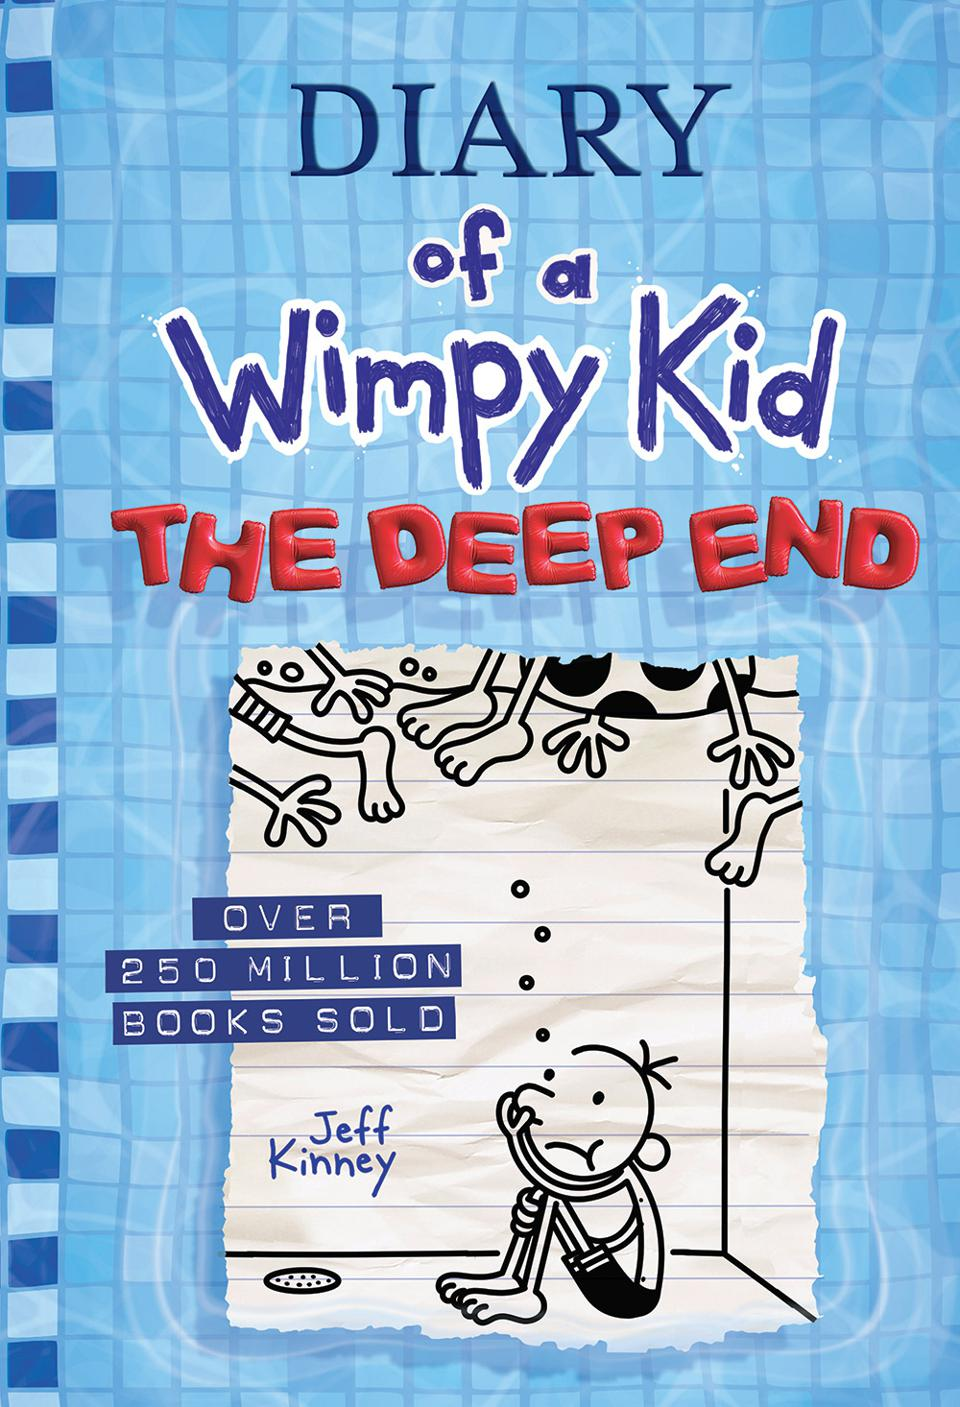 Diary Of A Wimpy Kid Series Author Jeff Kinney To Do Drive Through Socially Distant Book Tour